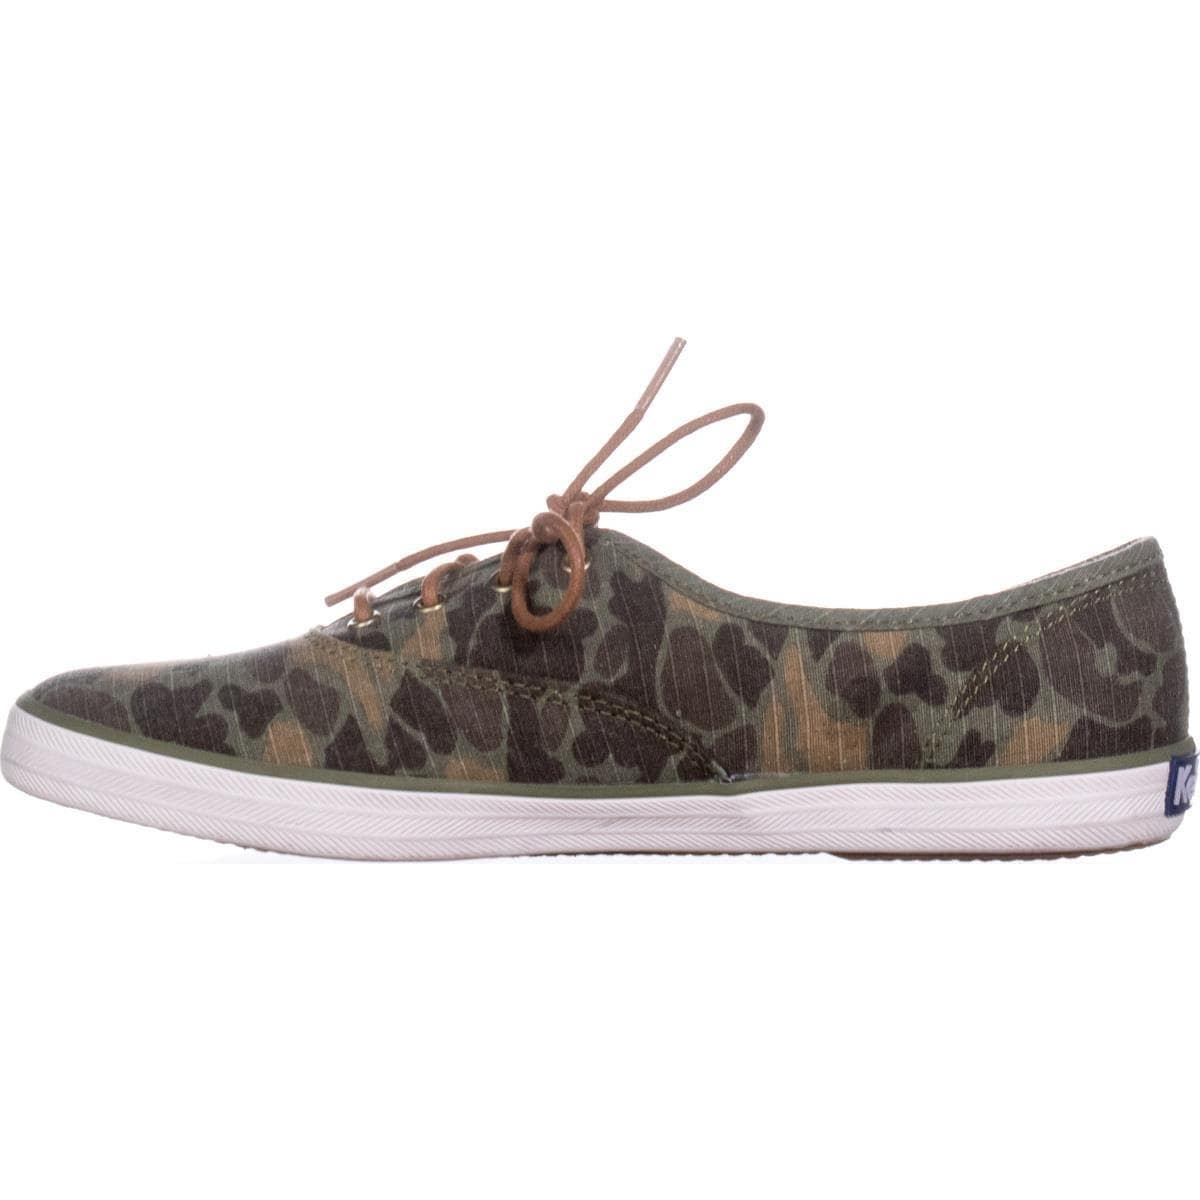 ca2545c809dd2 Shop Keds Champion Camo Ripstop Fashion Sneaker, Olive - 9 us / 40 eu -  Free Shipping On Orders Over $45 - Overstock - 21532835